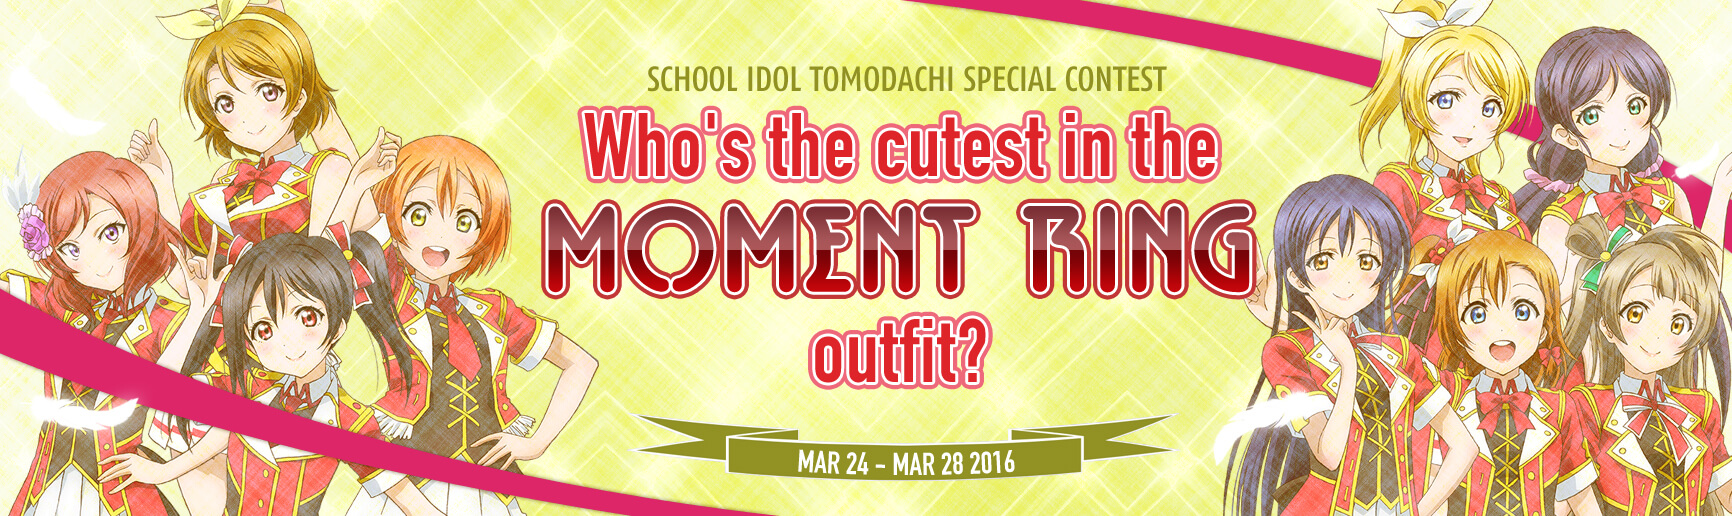 Who's the cutest in the Moment Ring outfit?